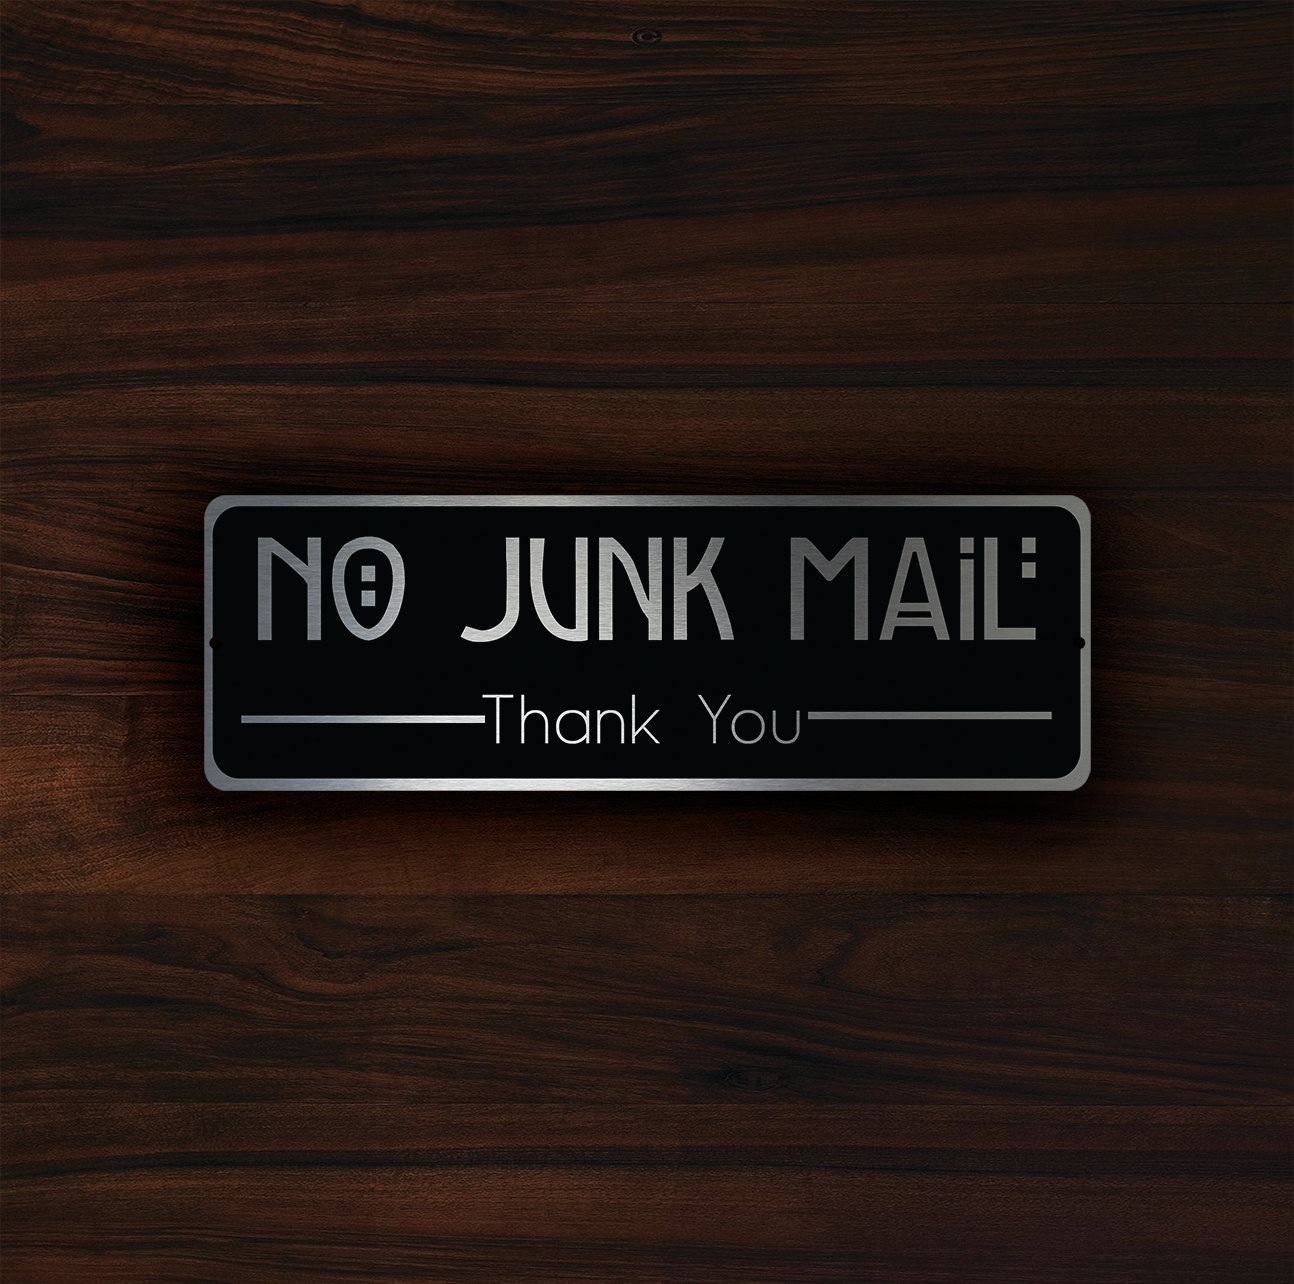 junkmail dating This article explains how to configure outlook junk mail filter properly to stop as many junk emails as possible how to keep the filter up to date, take a good message out of the junk folder and ensure that no legitimate e-mails gets there.